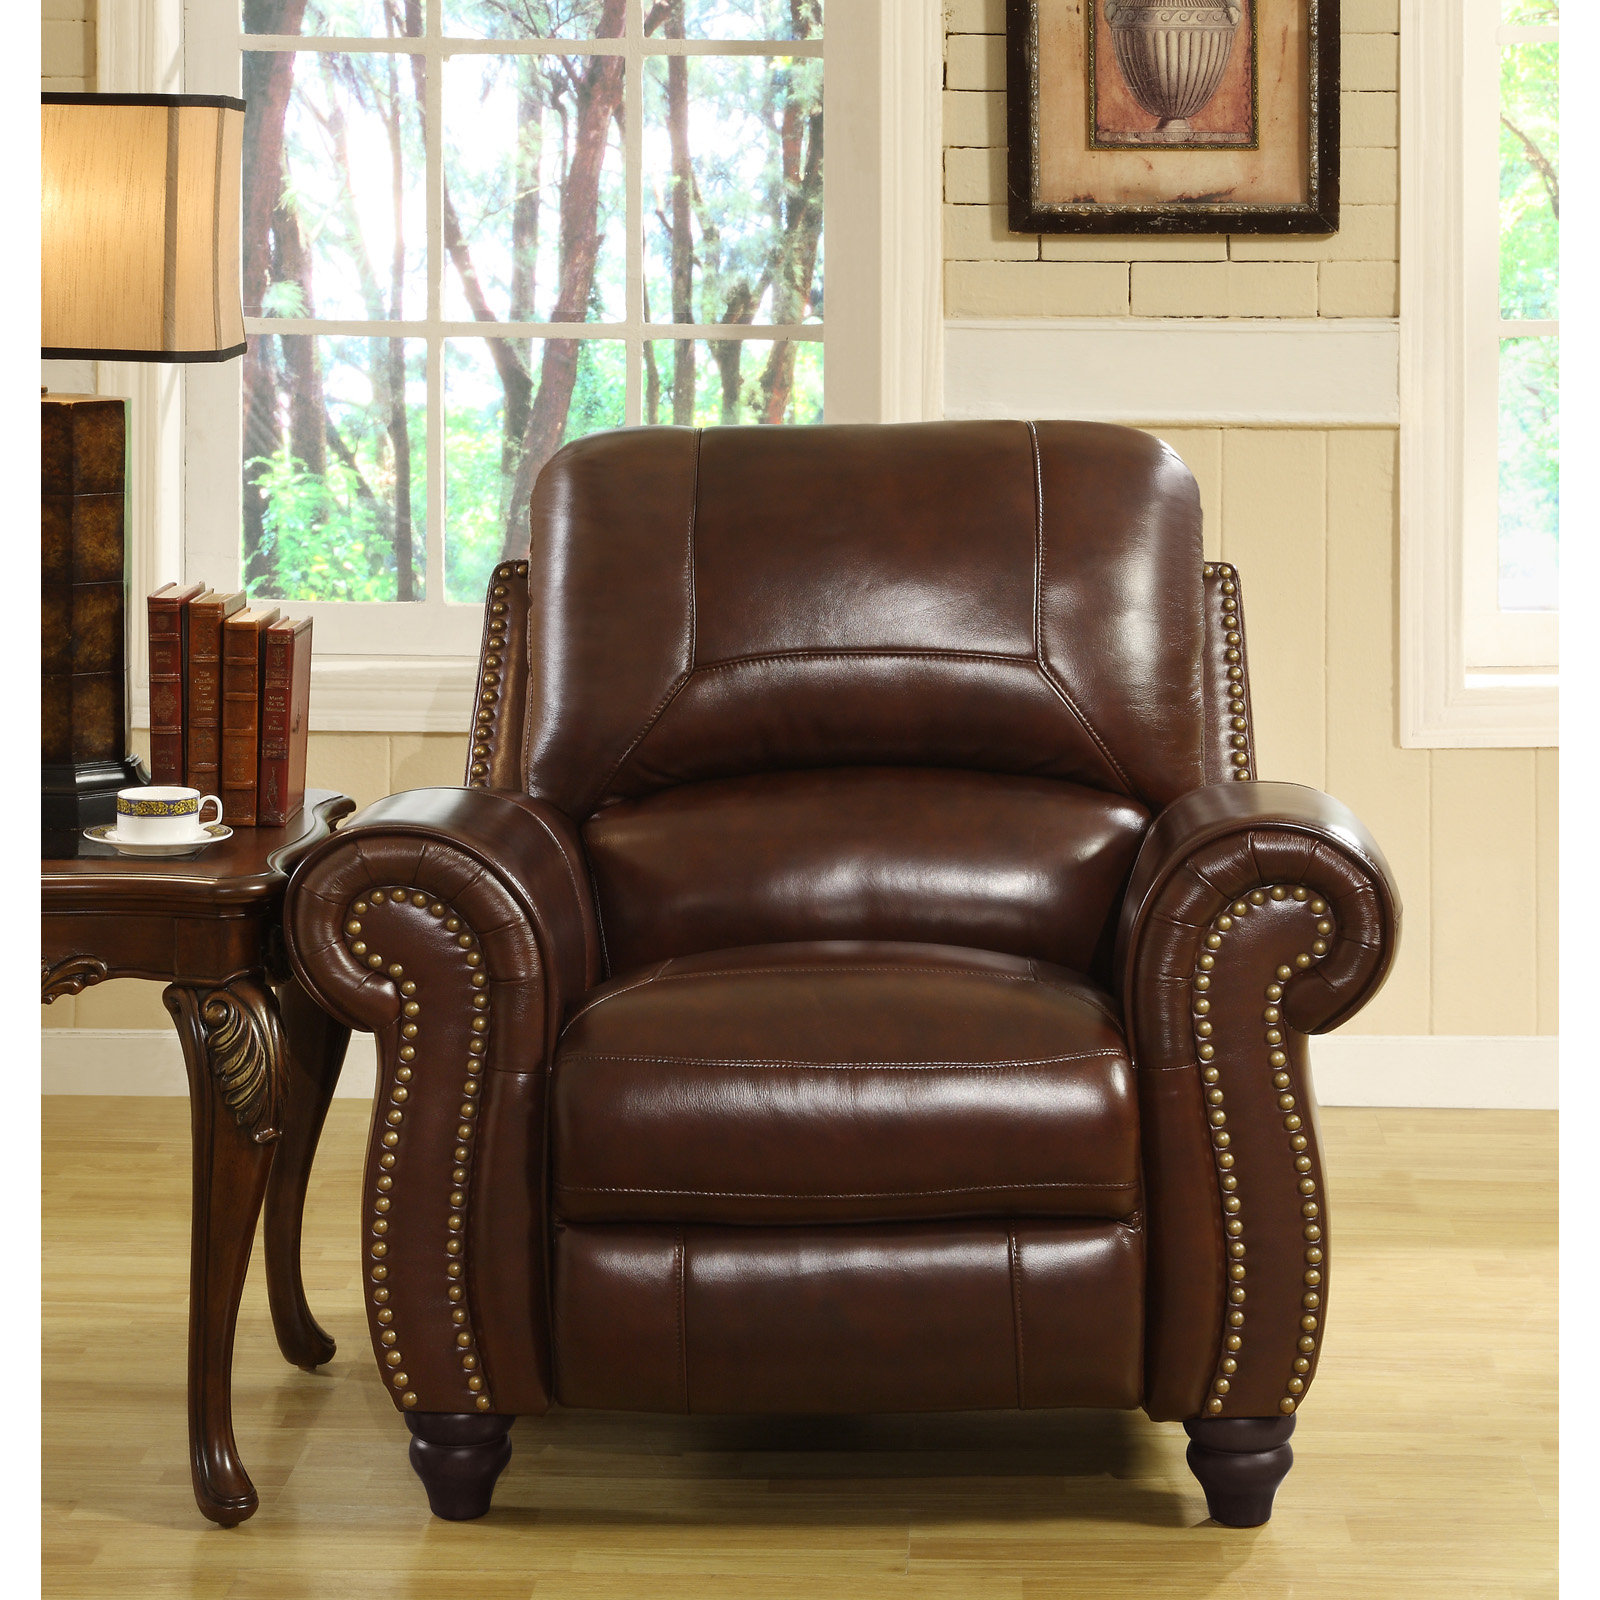 Abbyson Cambridge Burgundy Leather Pushback Reclining Chair | Hayneedle : push back leather recliner - islam-shia.org